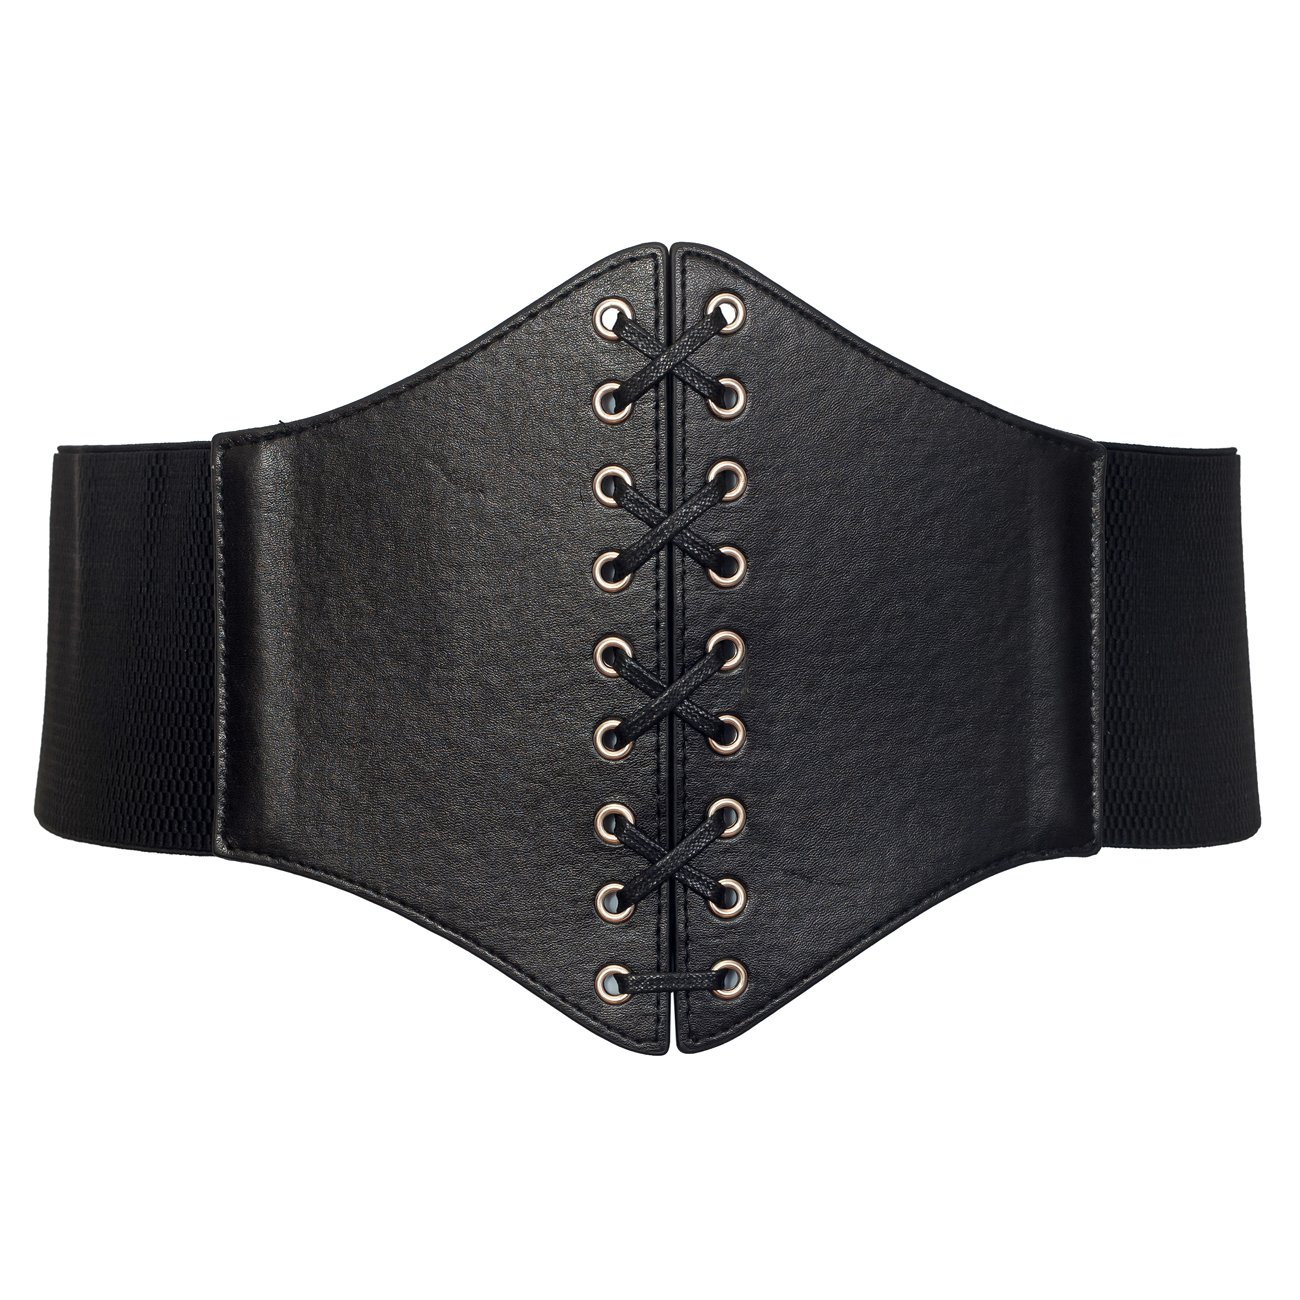 eVogues Plus size Faux Leather Corset Style Wide Elastic Belt Black - One Size Plus